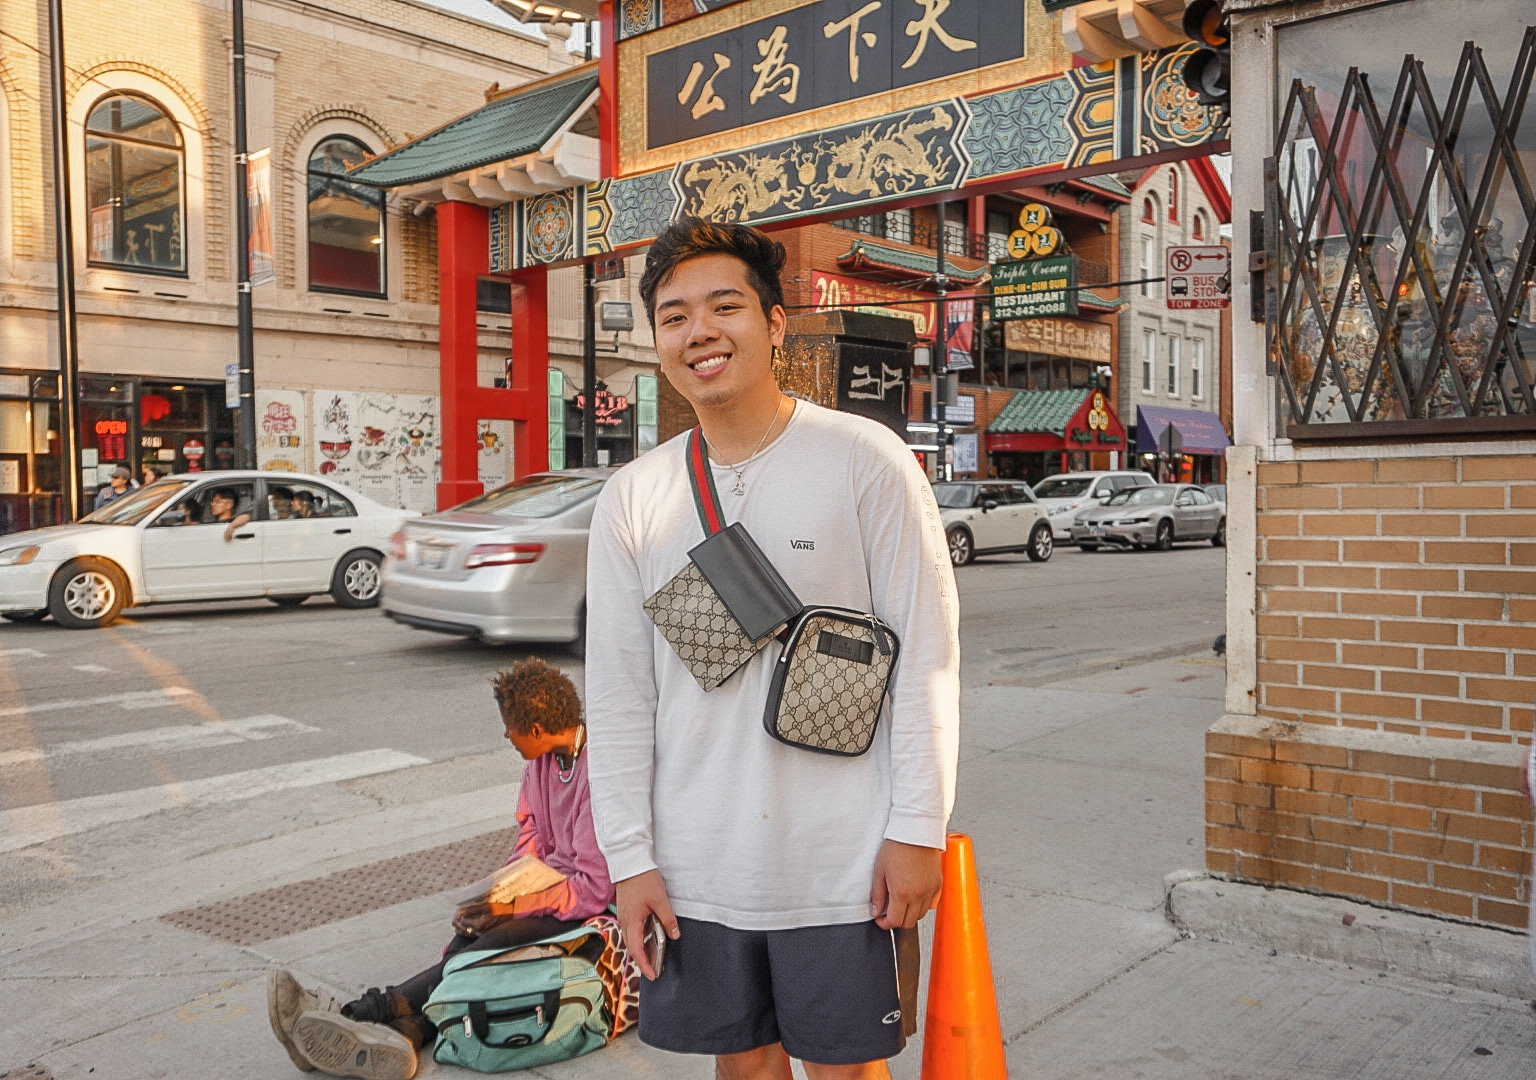 Andy Le stands in a busy city